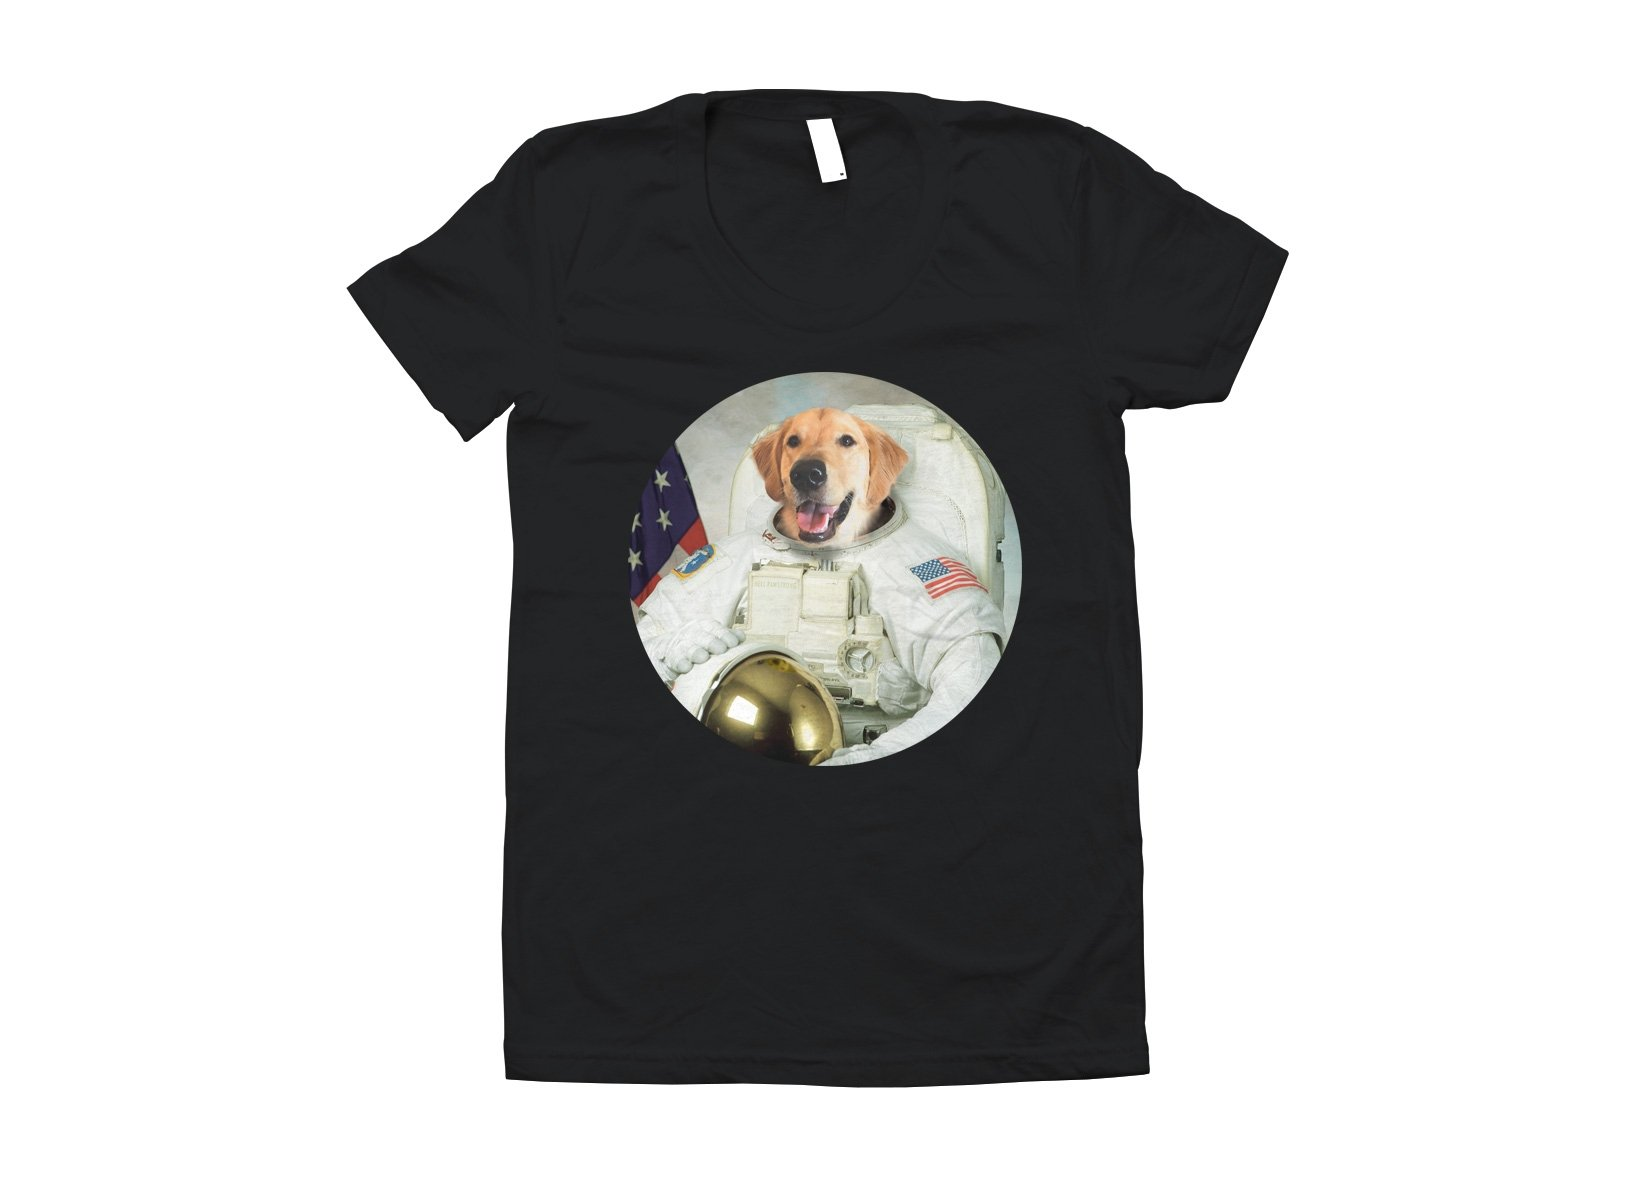 Astrodog on Juniors T-Shirt